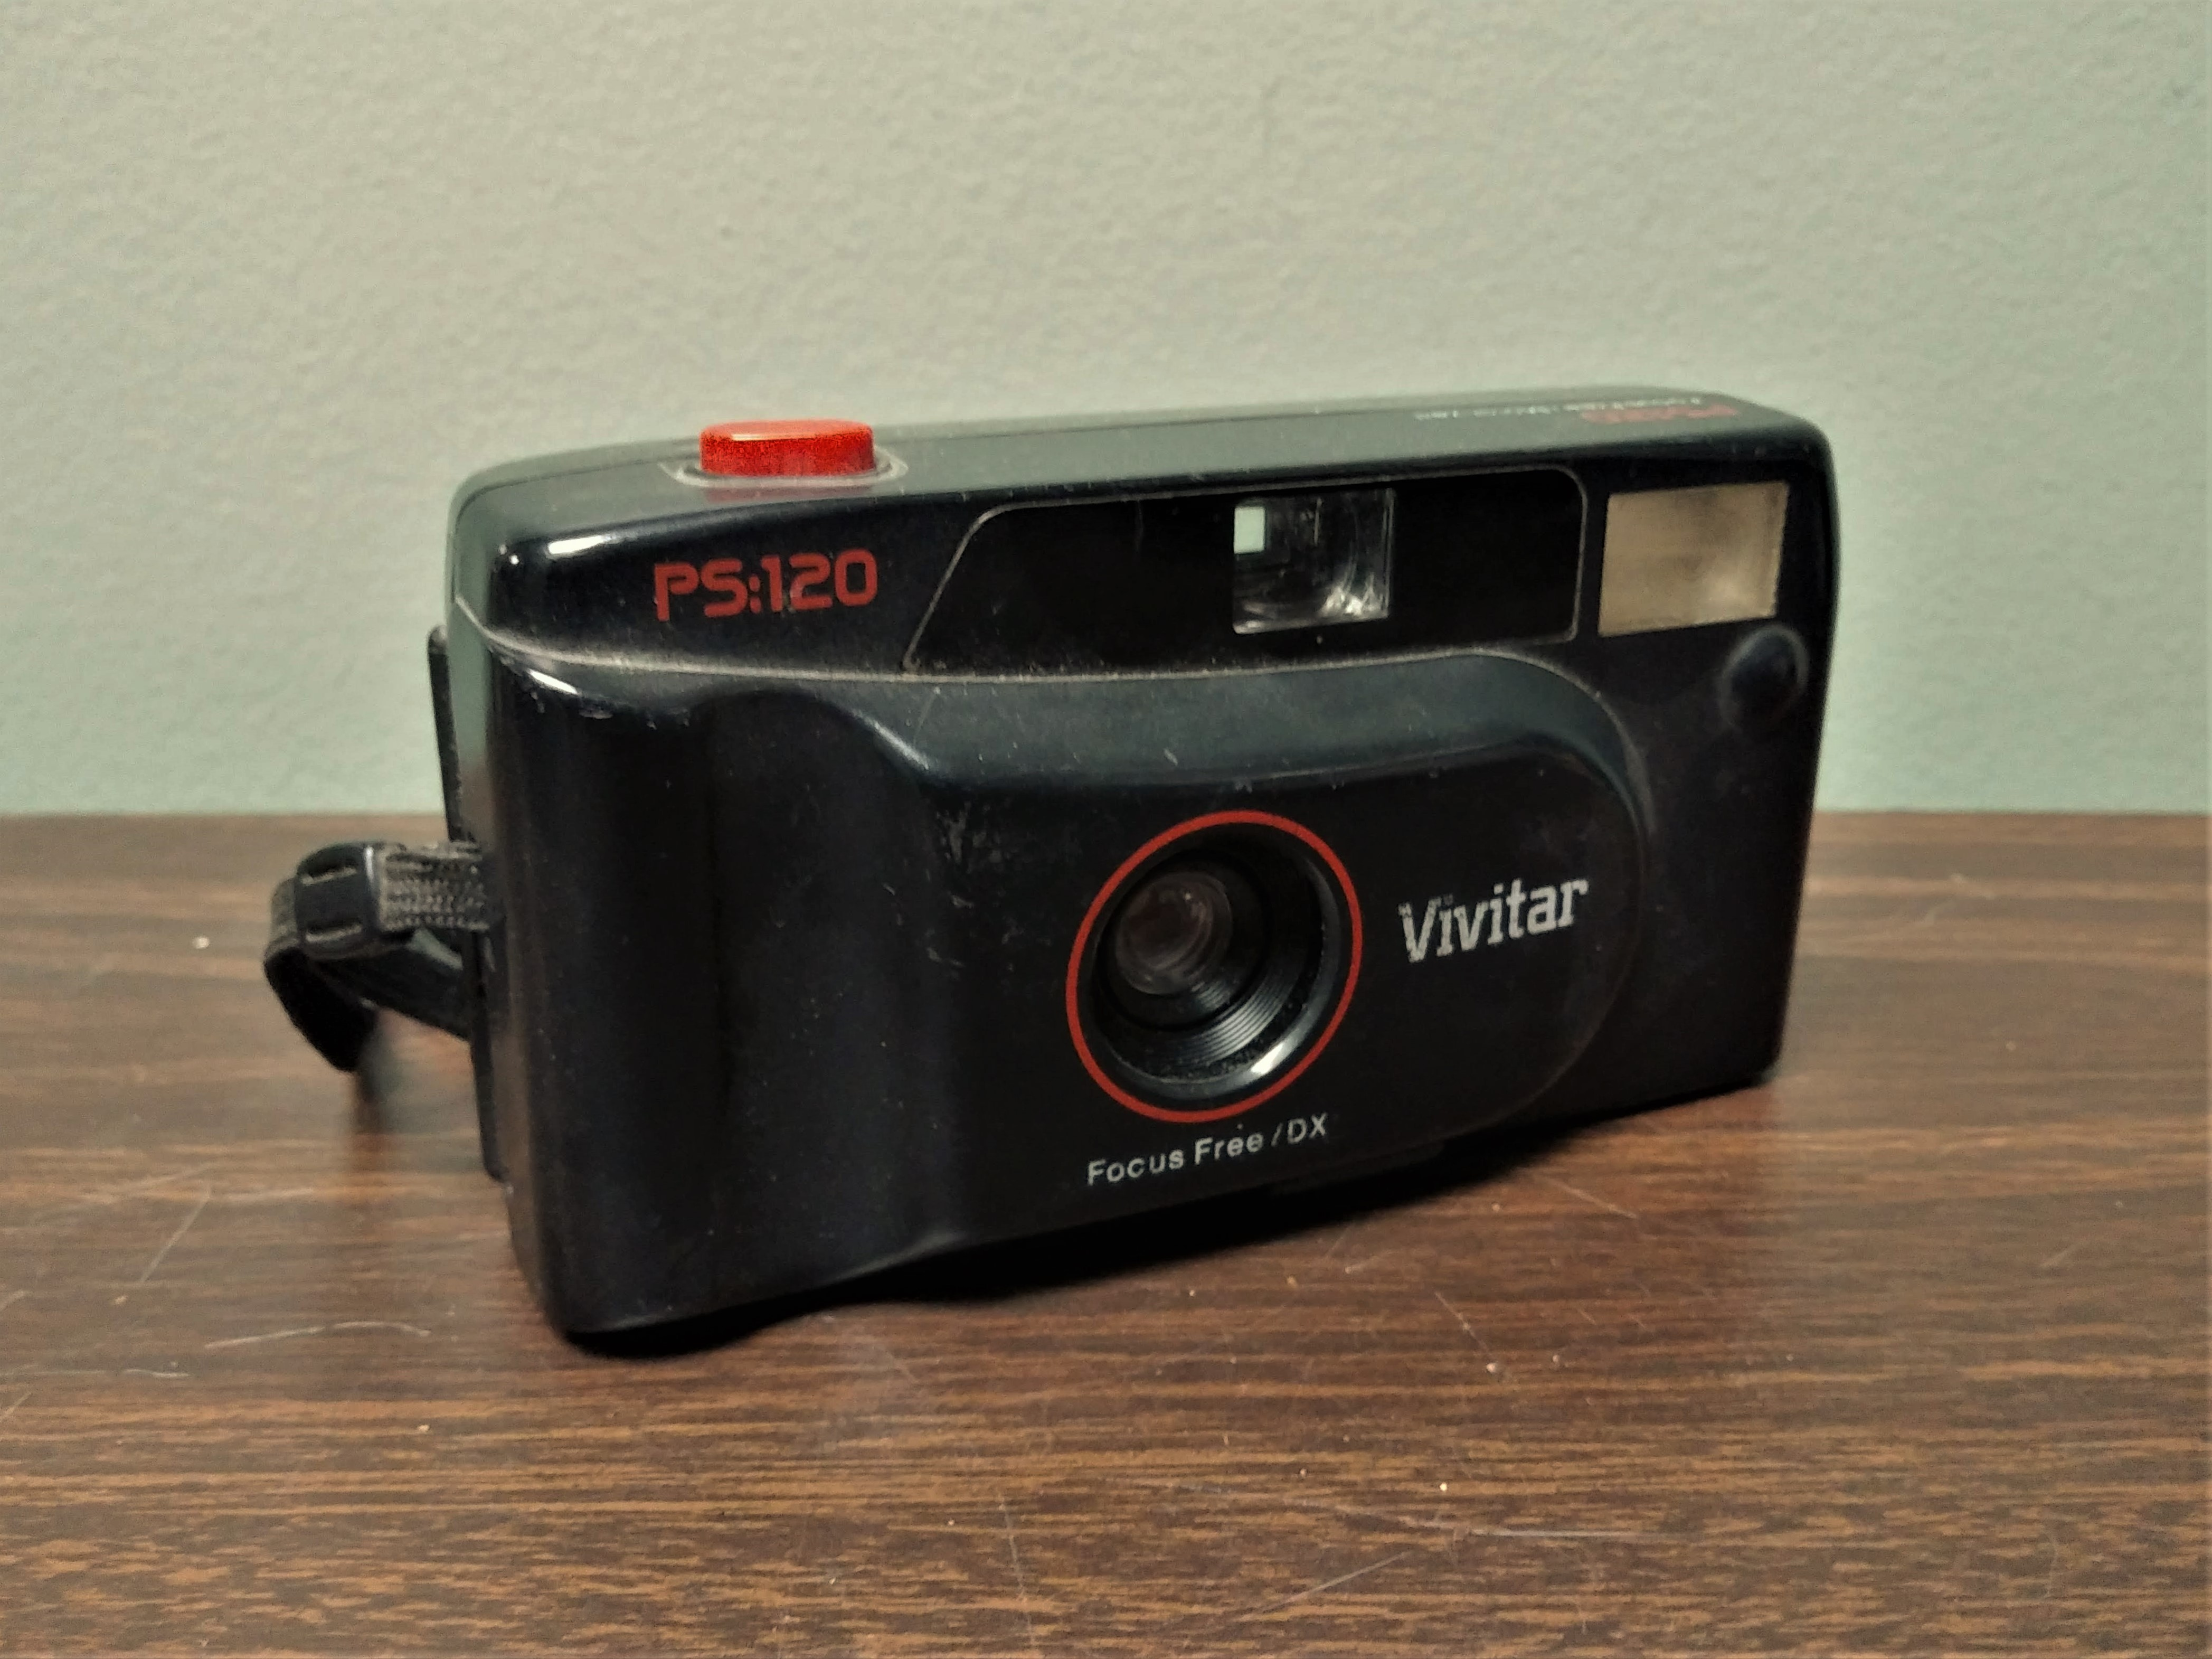 Vivitar Point-and-Shoot Camera